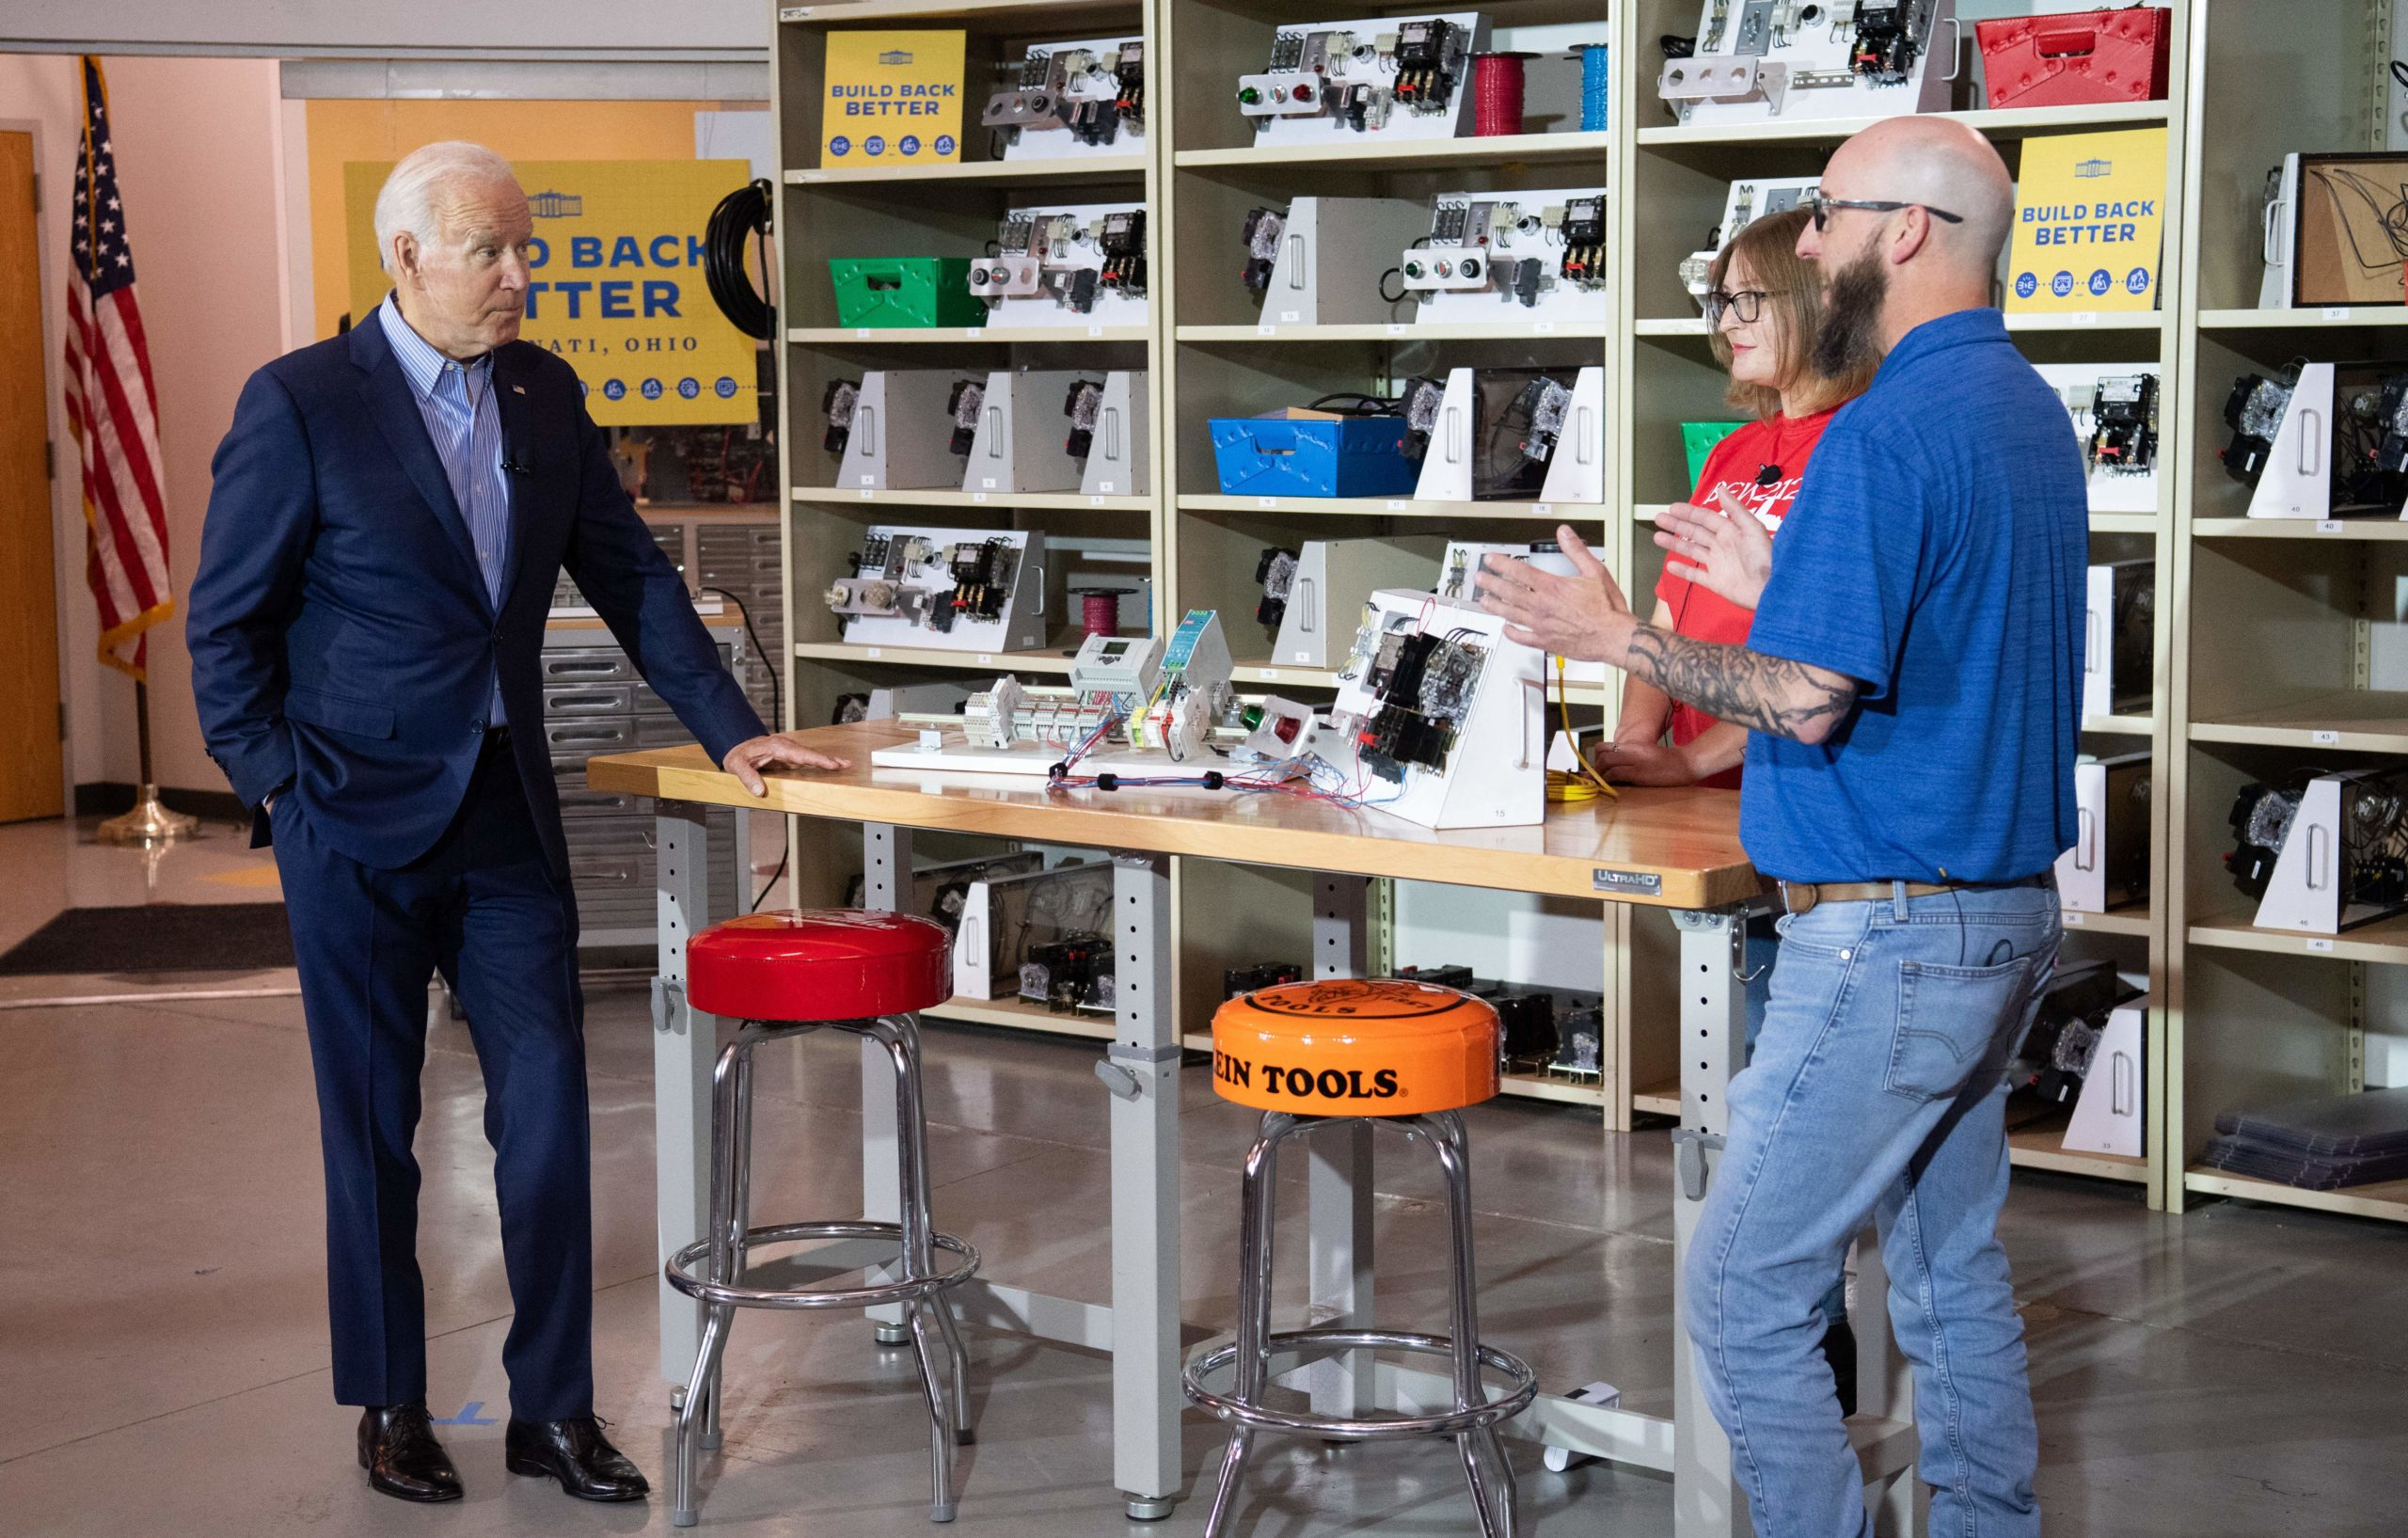 President Joe Biden speaks with an instructor and an apprentice at a union training center in Cincinnati, Ohio, on Wednesday. (Saul Loeb/AFP via Getty Images)